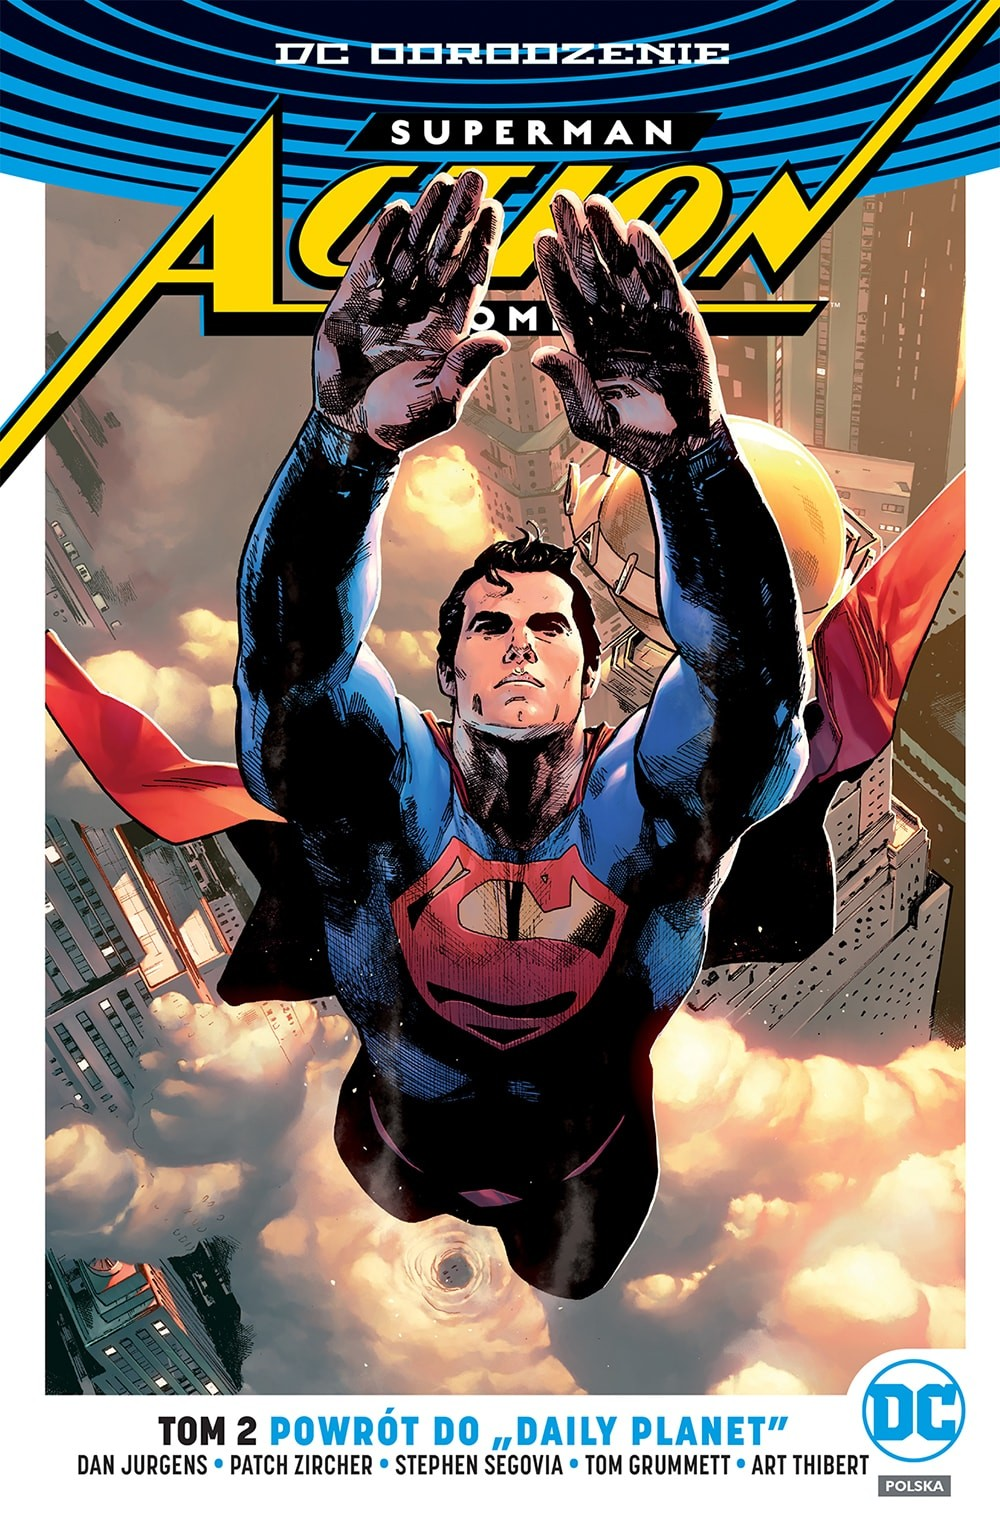 cover_rebirth Superman Action_tom 02 10 cm-min.jpg